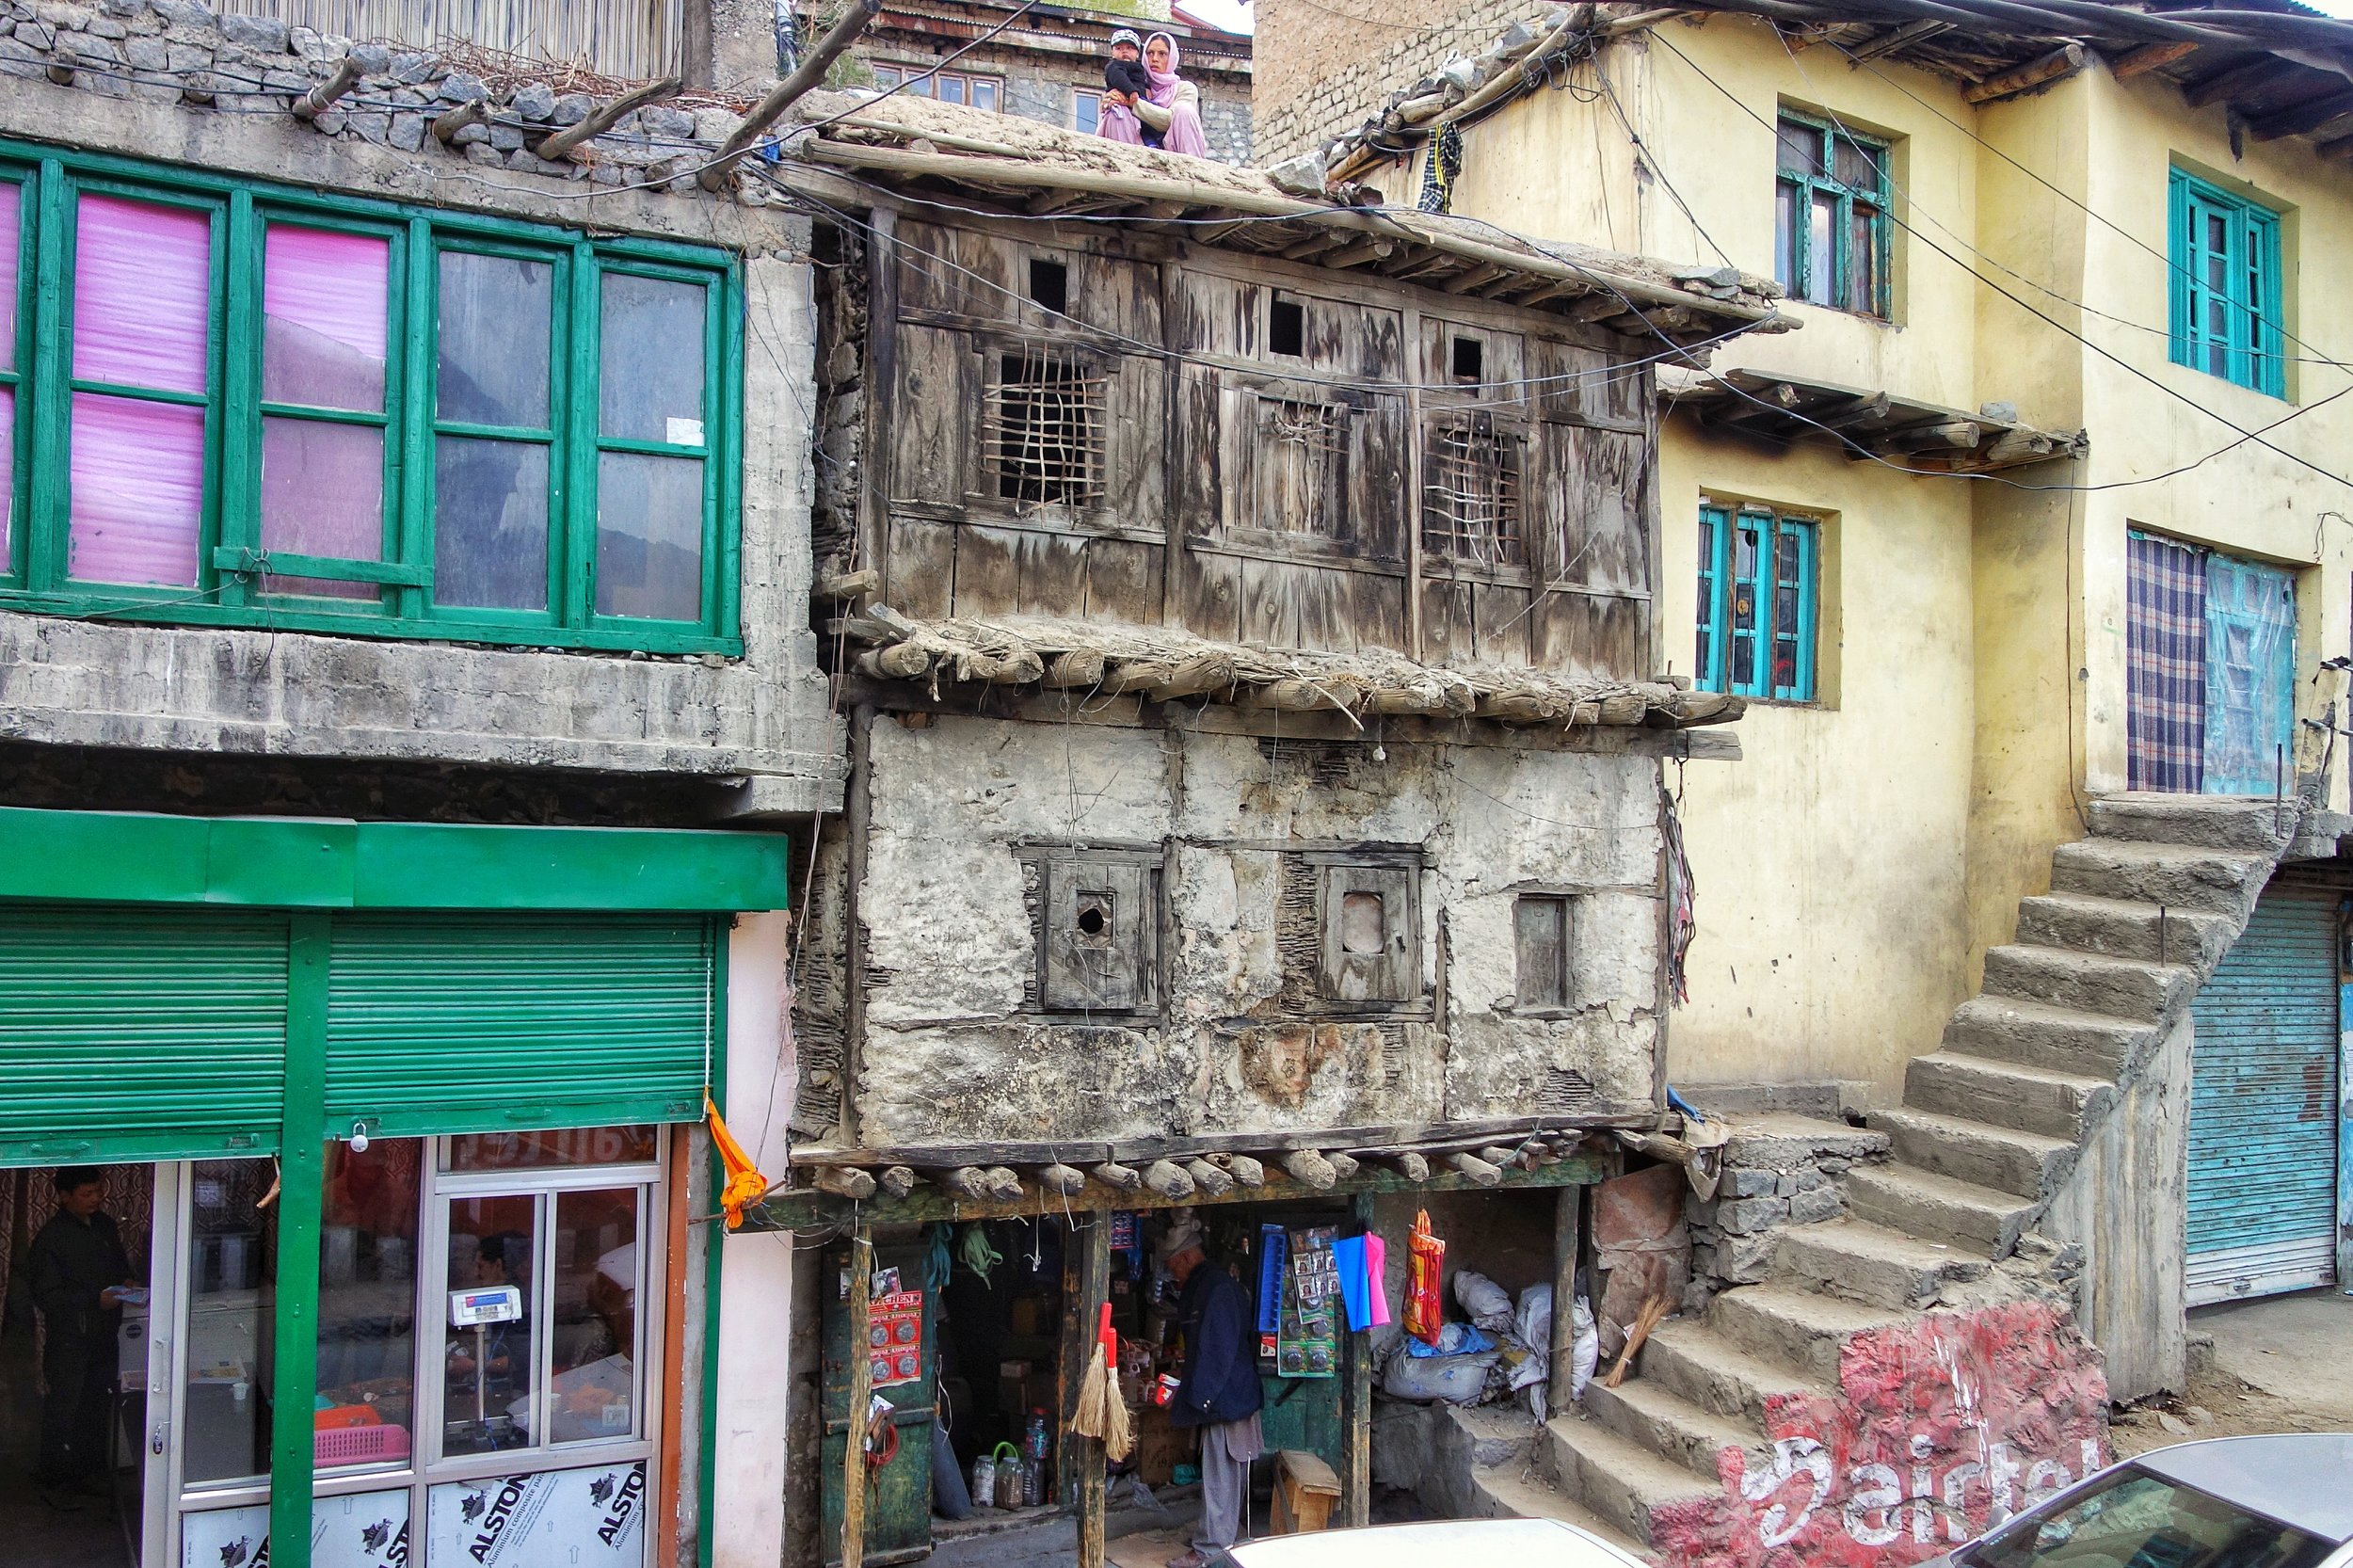 An old style Building in the Kargil Bazar